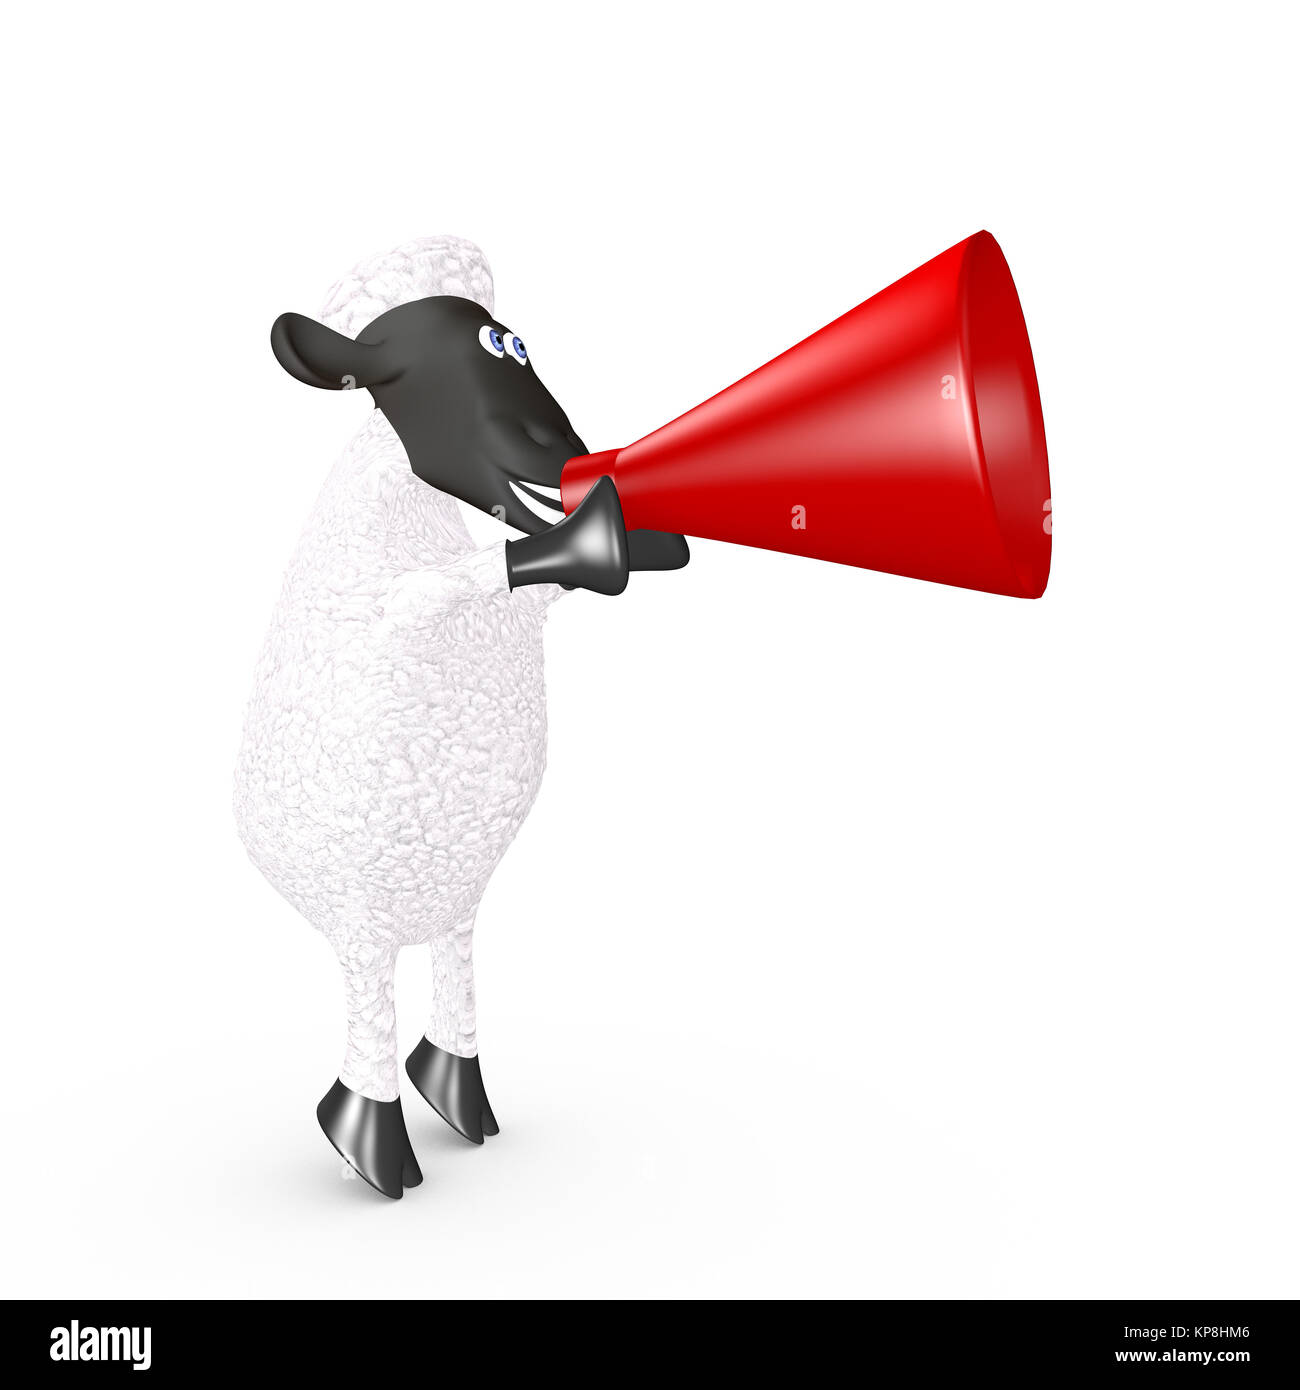 funny sheep speaking loudly into a megaphone - Stock Image